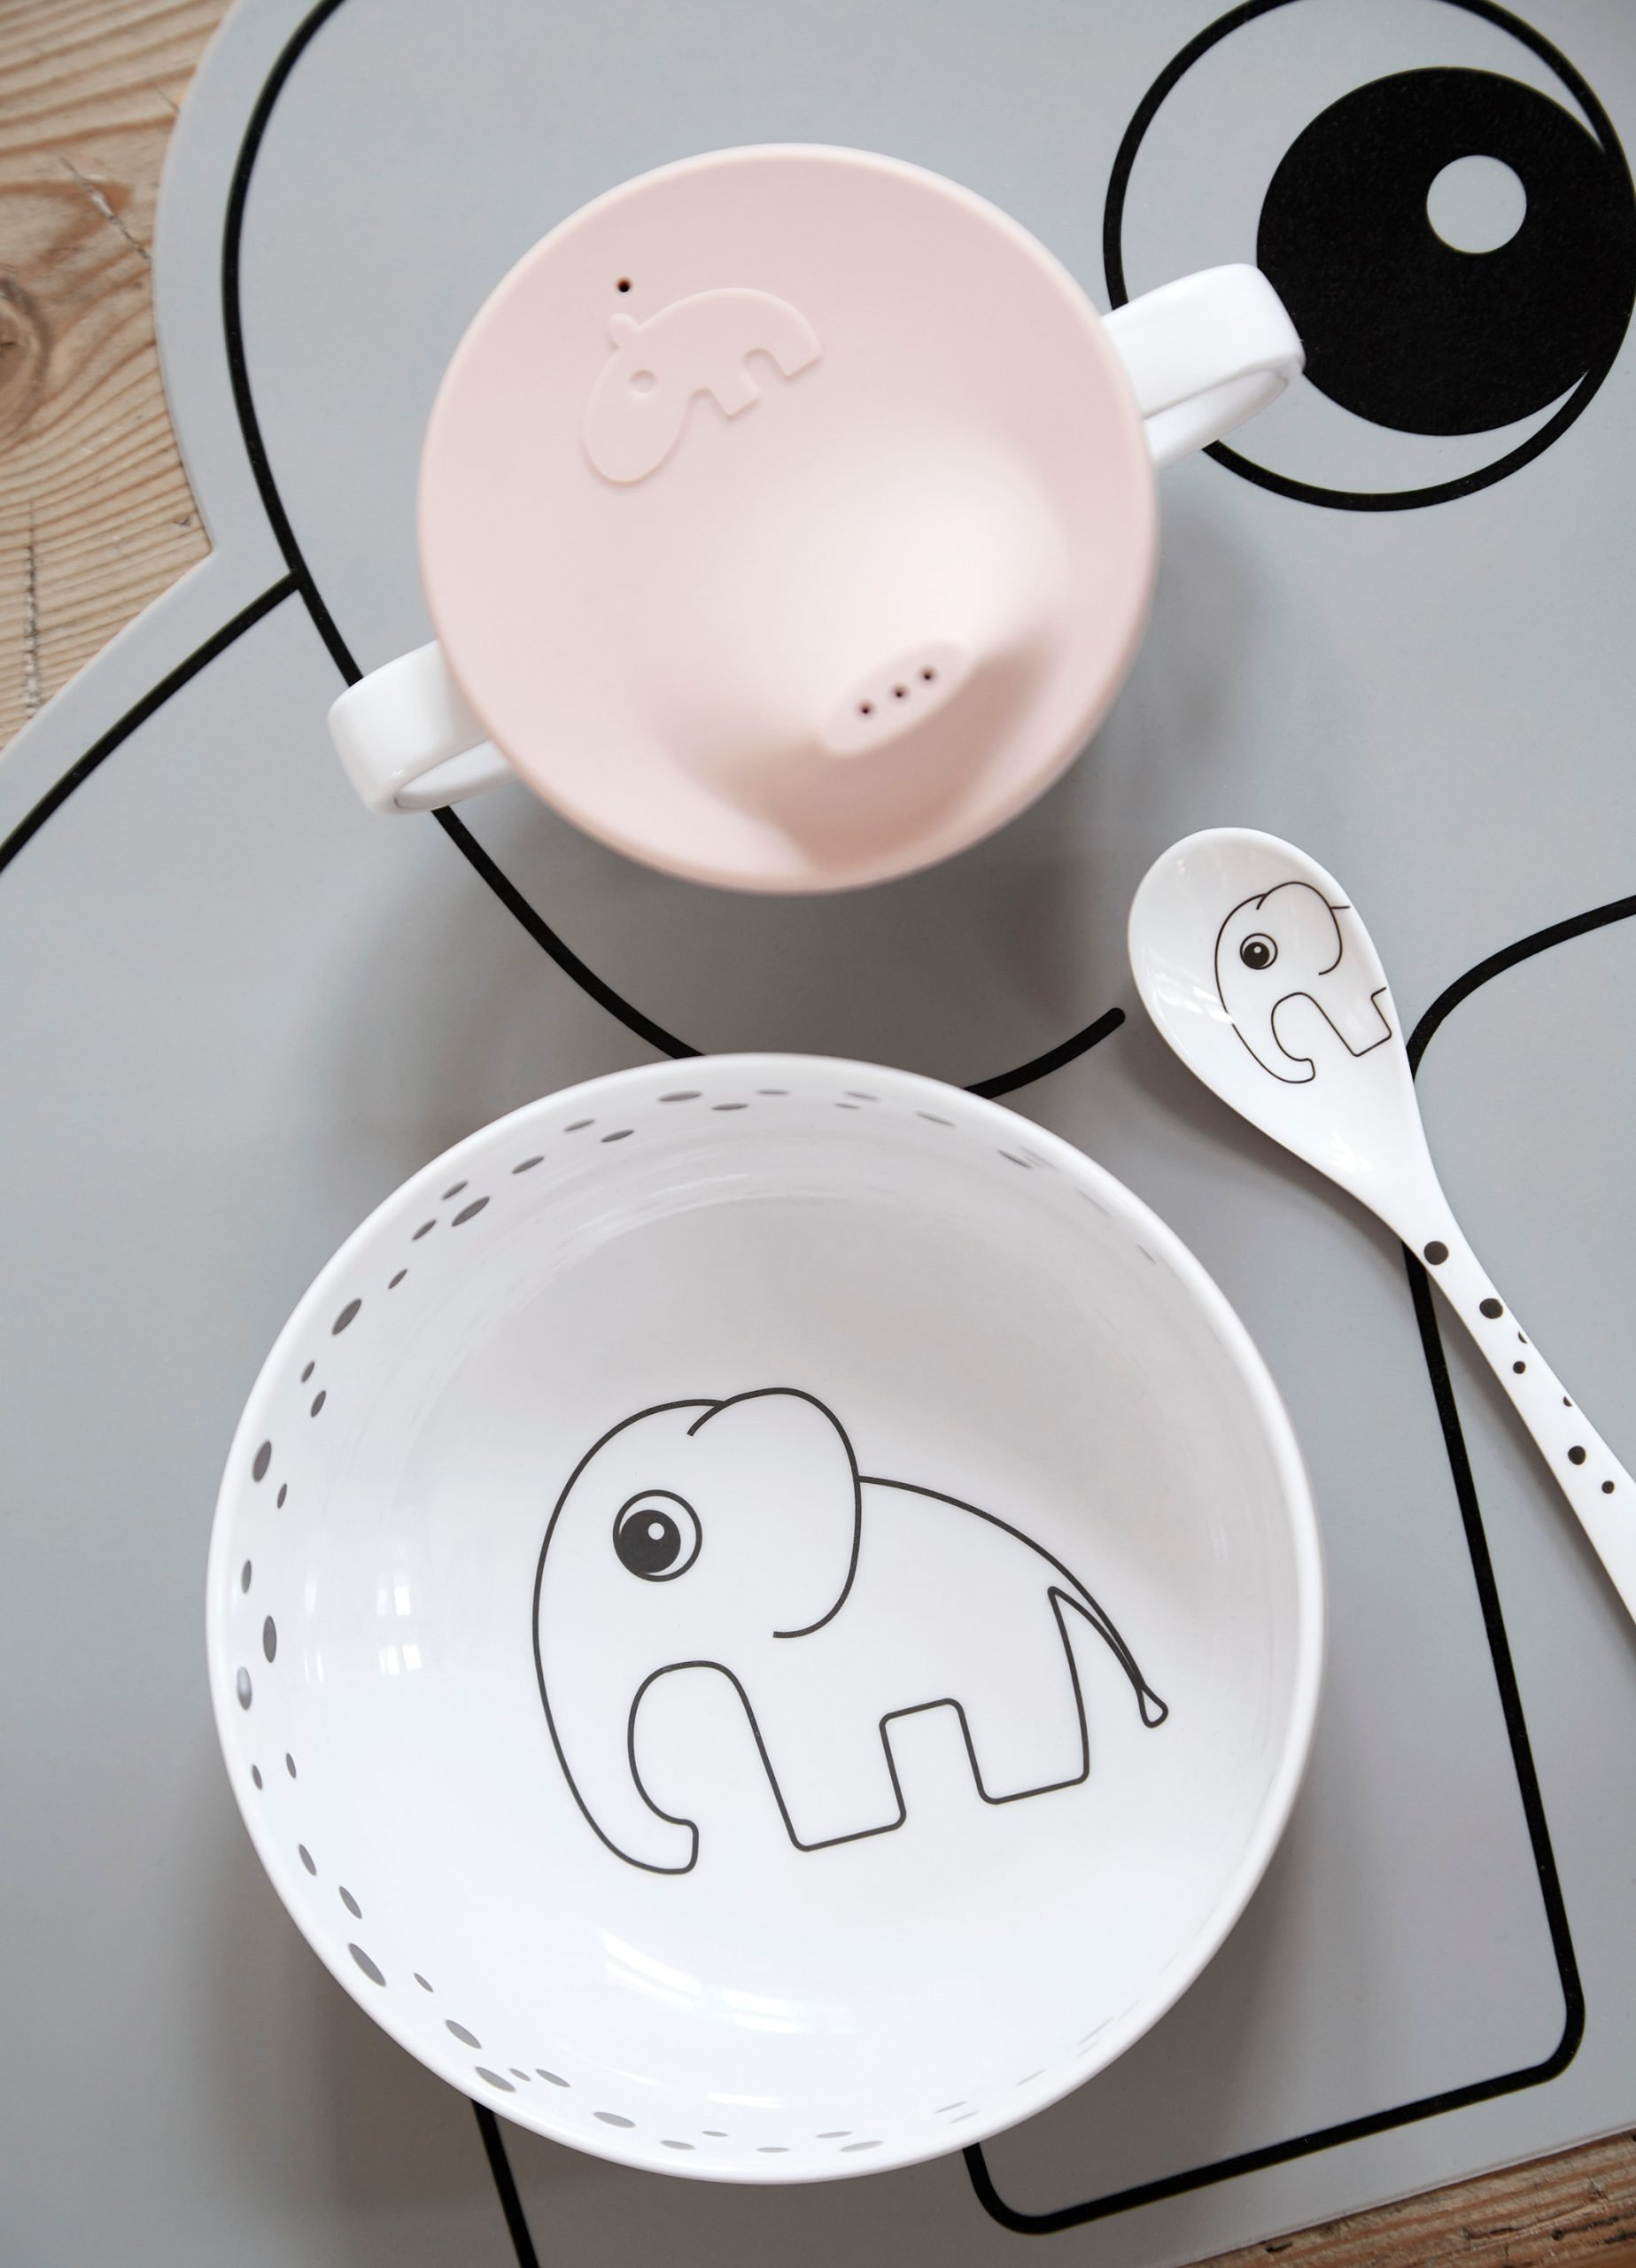 baby weaning plate